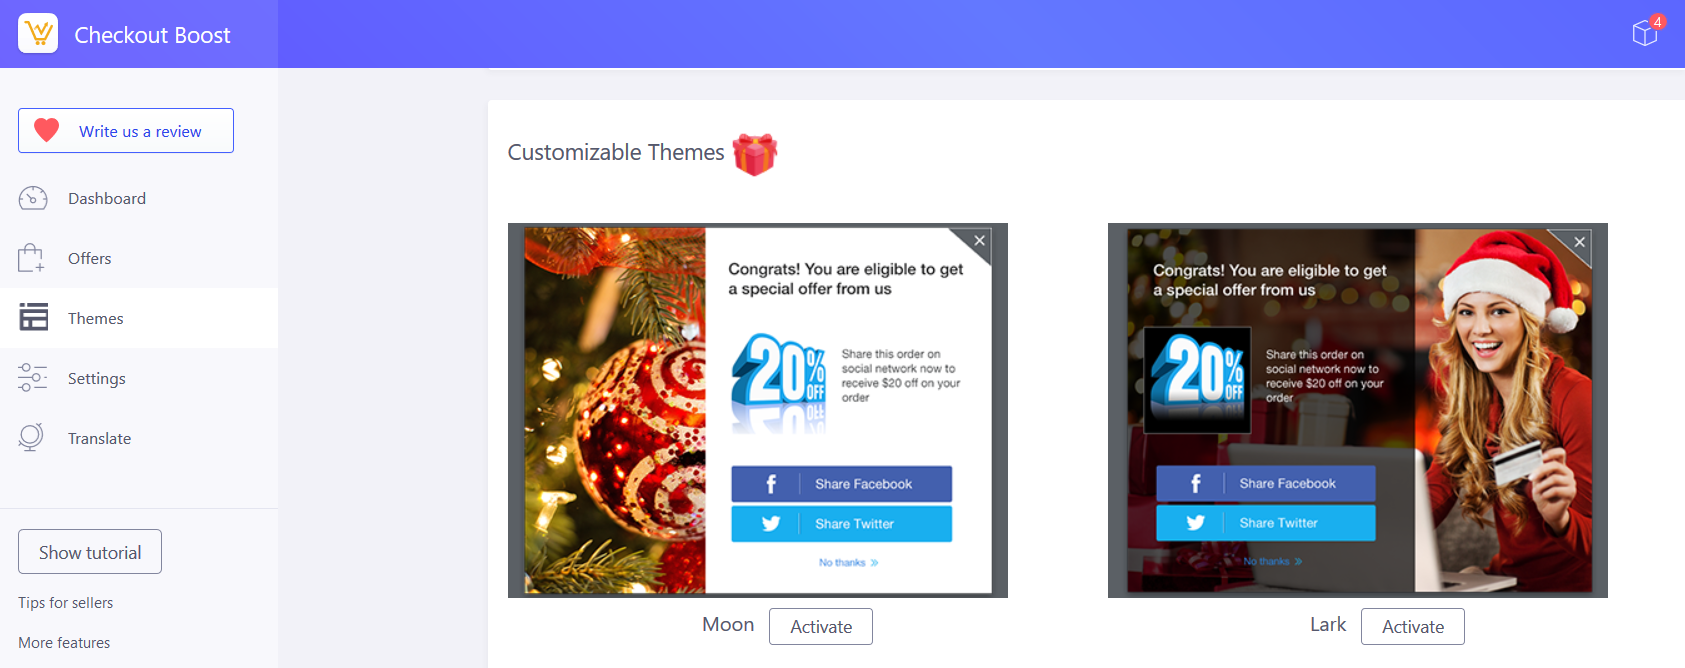 Checkout Boost - Customizable Theme